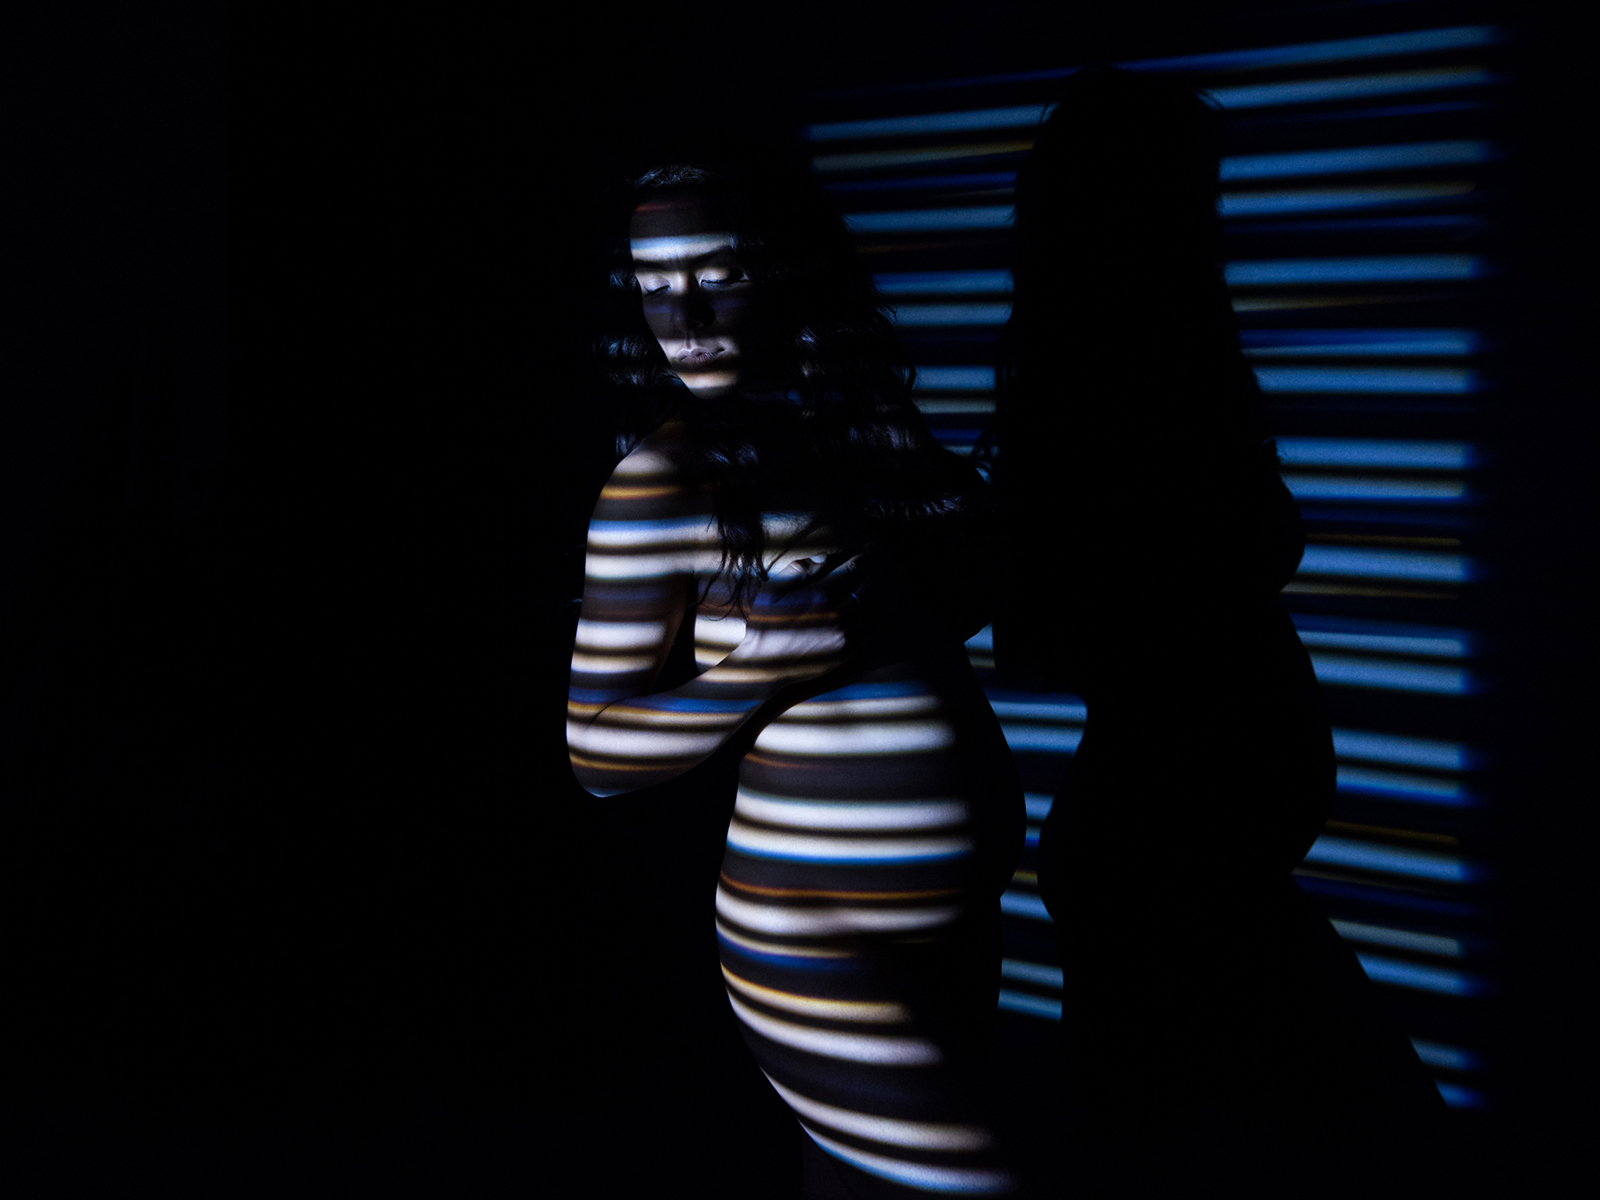 Colour maternity photograph of a nude pregnant lady standing in the shadow of a Venetian blind.